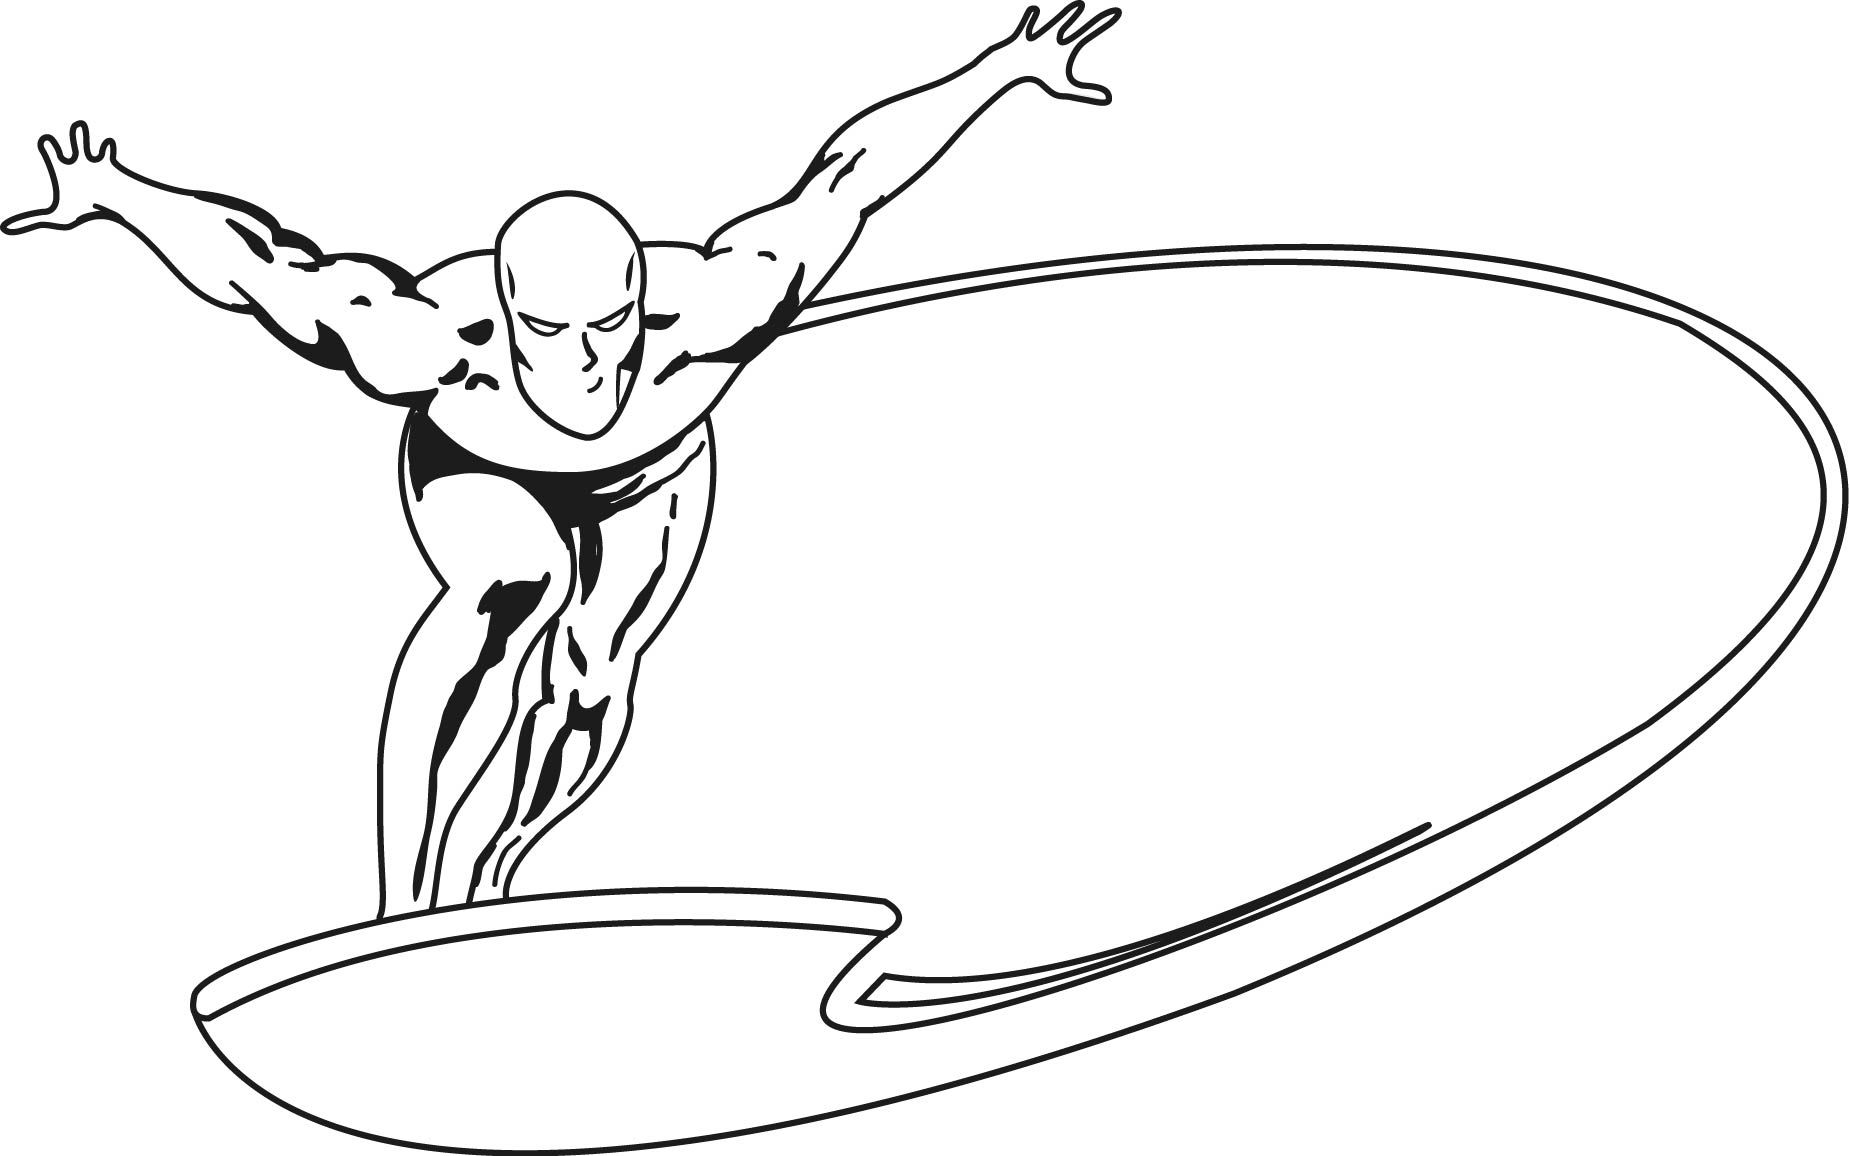 Free Silver Surfer Coloring Page Coloring Pages Silver Surfer Mermaid Coloring Pages